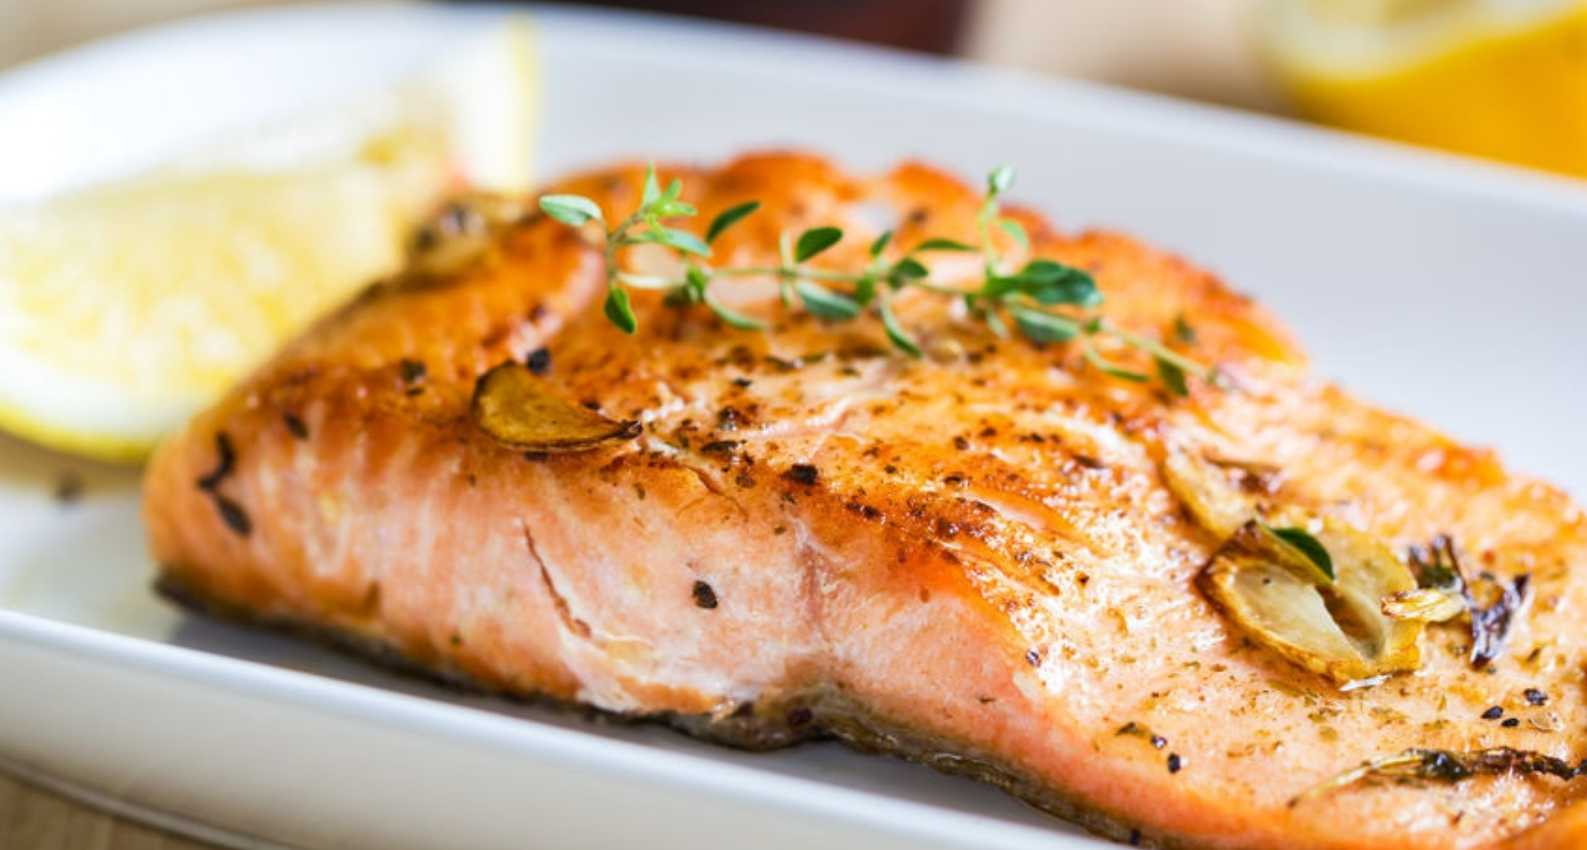 Fatty fish are a rich source of EPA and DHA, omega-3 fatty acids known to reduce inflammation.